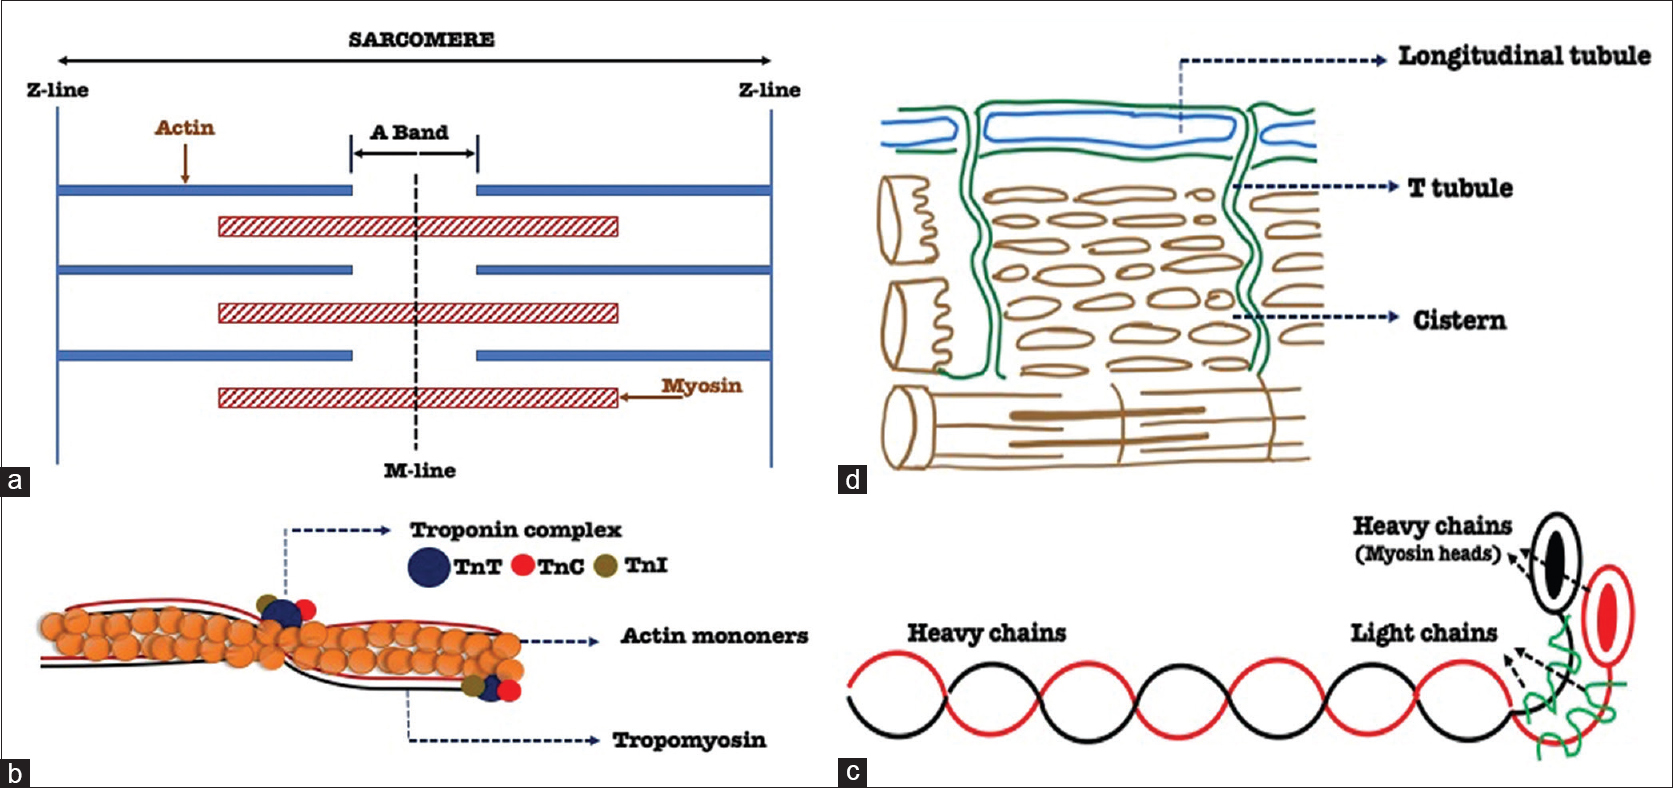 Figure 1: Ultrastructure of a skeletal muscle fiber. (a) Arrangement of thin (actin) and thick (myosin) filaments and the Z line in a relaxed skeletal muscle. (b and c) Structure of actin and myosin filaments (with their components). (d) Sarcotubular system